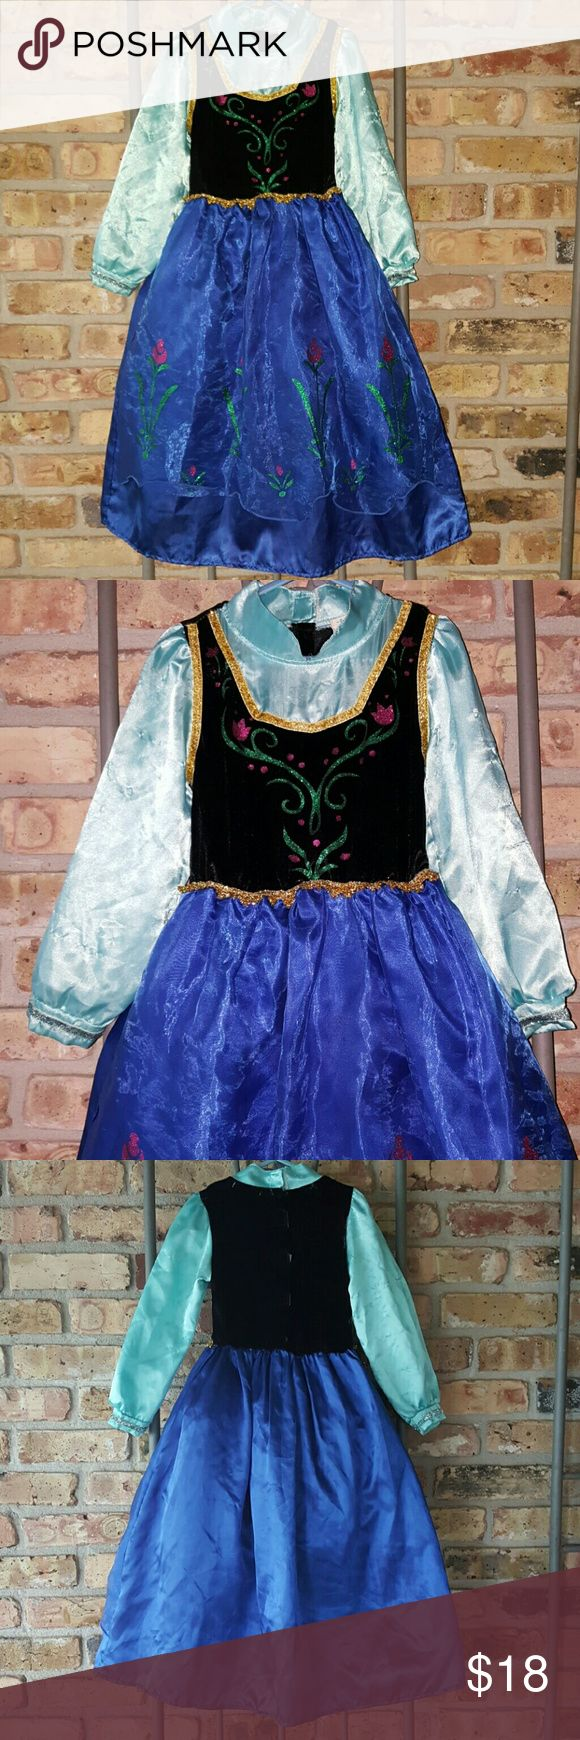 Cool Baby Ana dress Ana costume play dress. Has petticoat underneath skirt. Velvet top. Sheer overlay on skirt. Arms are snagged up from pulling on and off. Well loved, but body is in great condition. Cool Baby Dresses